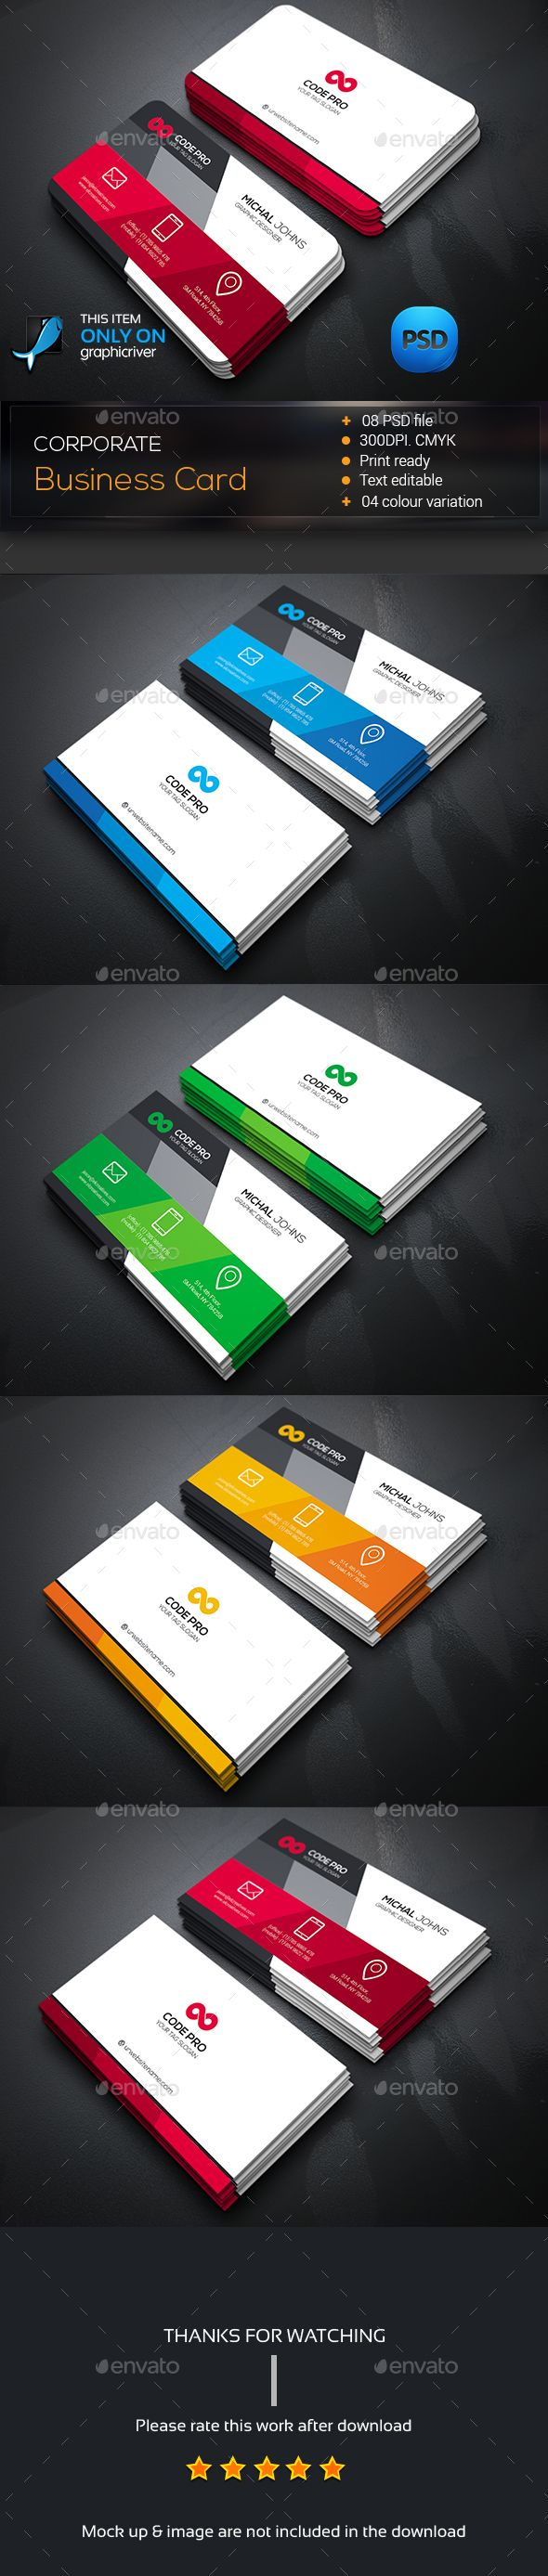 Business card template psd design download httpgraphicriver business card template psd design download httpgraphicriveritem business card14237120refksioks colourmoves